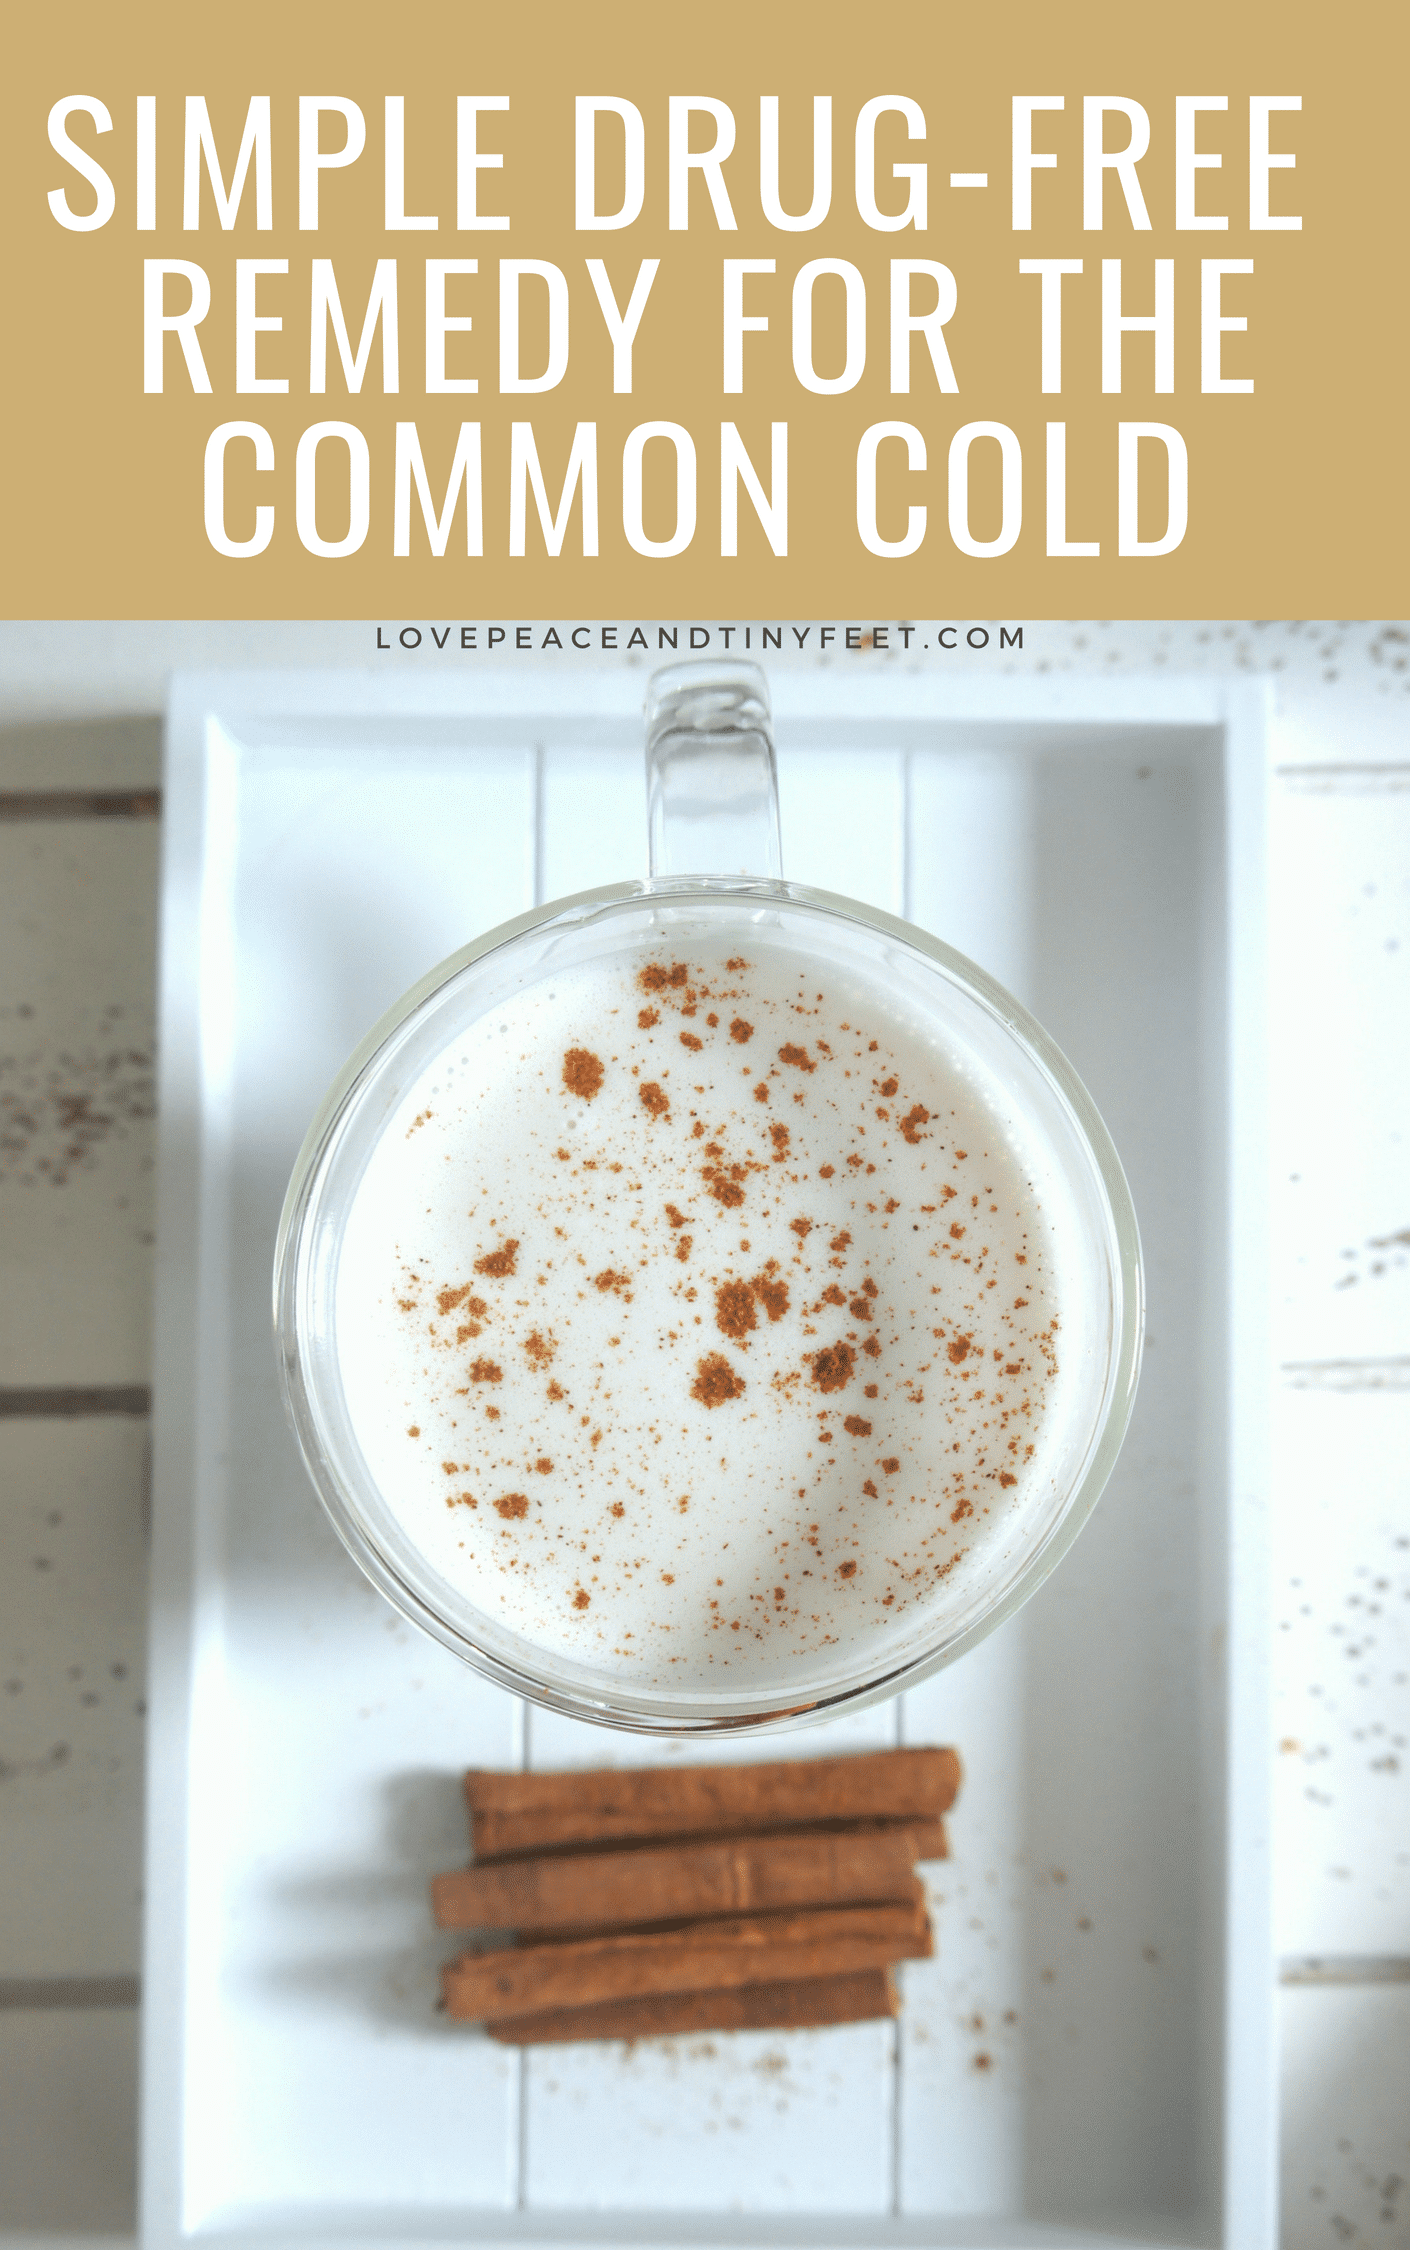 Simple Drug-Free Remedy for the Common Cold using natural and healing spices